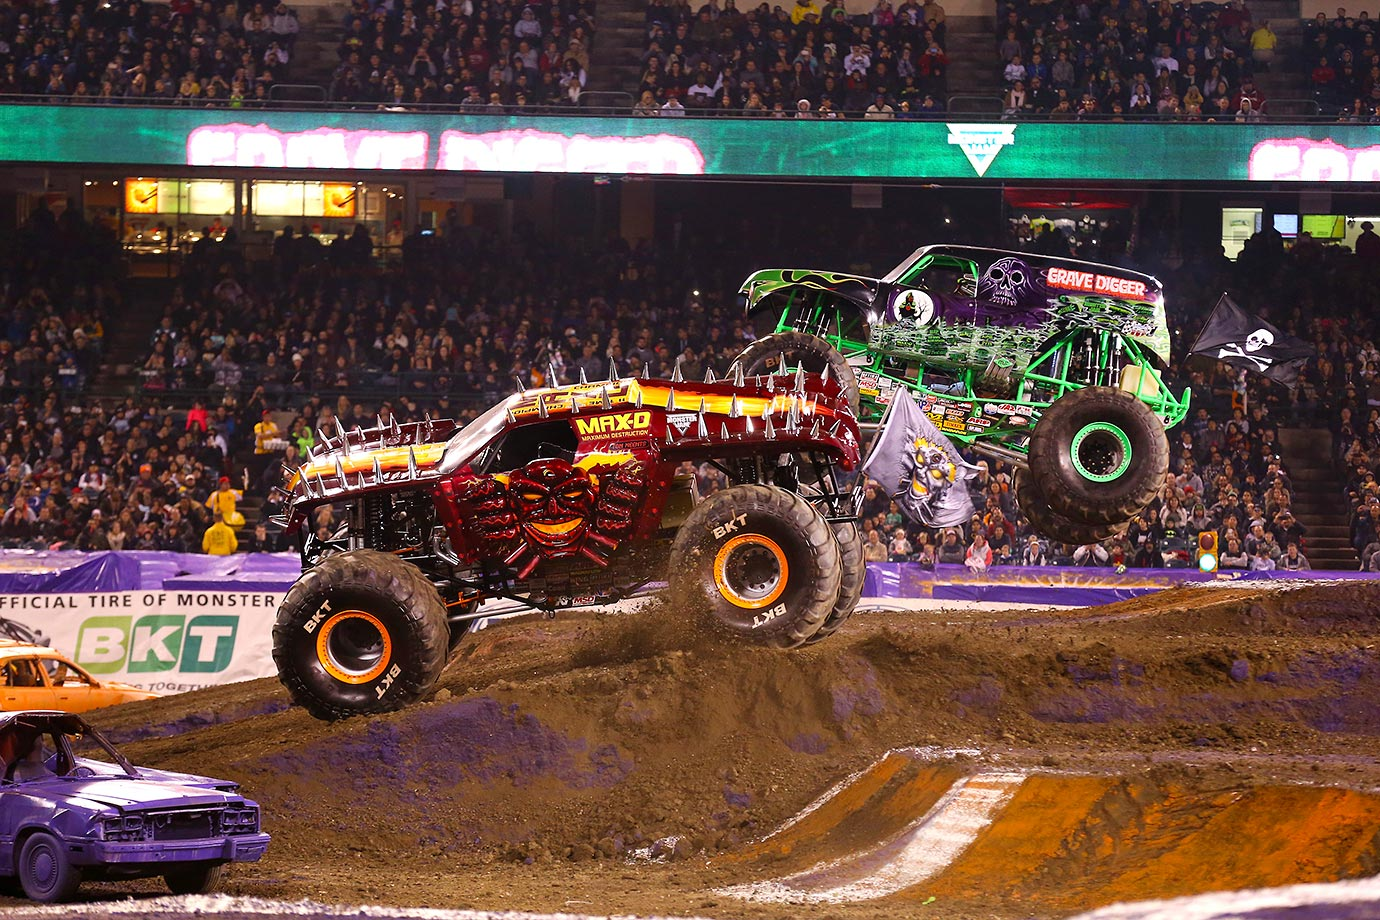 Max-D edges out Grave Digger to win the Monster Jam event in Anaheim.